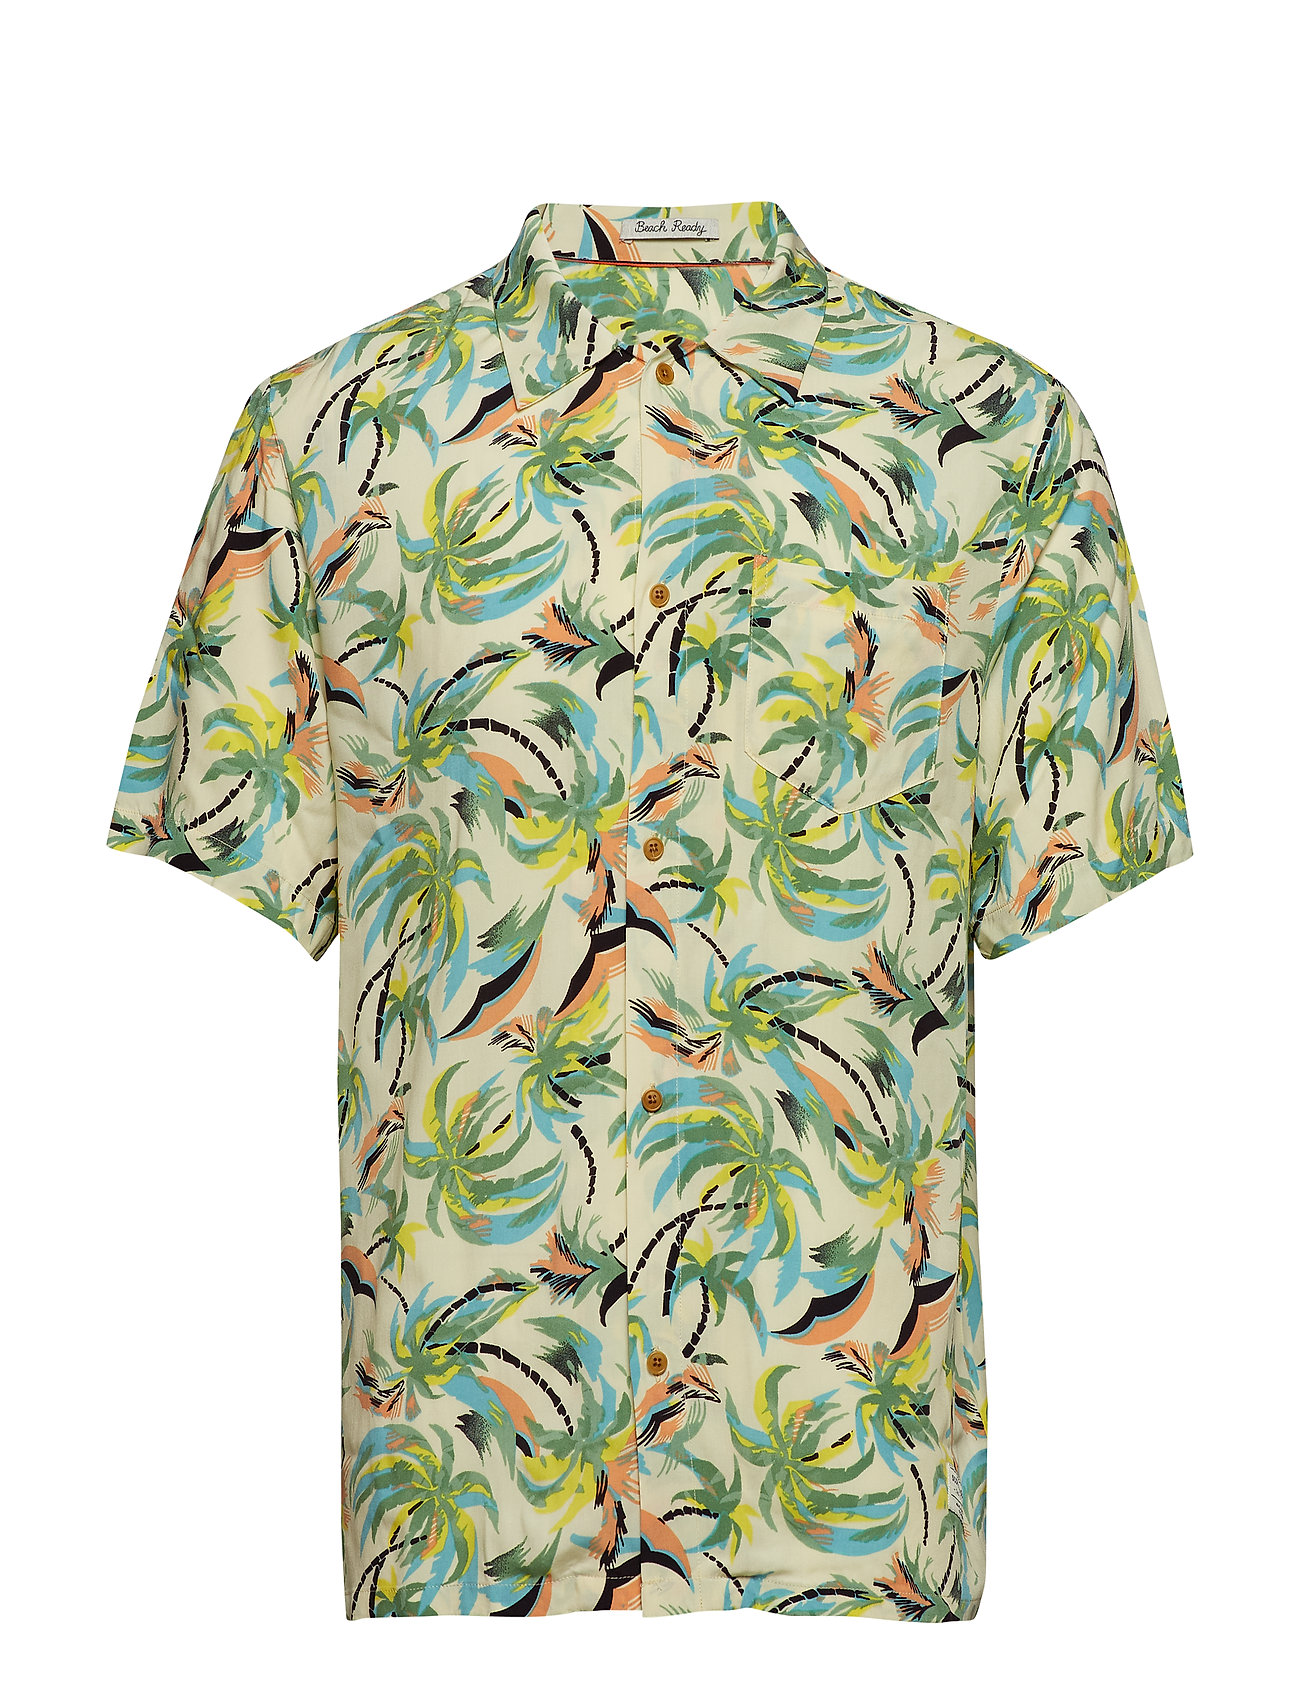 Scotch & Soda HAWAIIAN FIT - Printed shortsleeve shirt - COMBO B